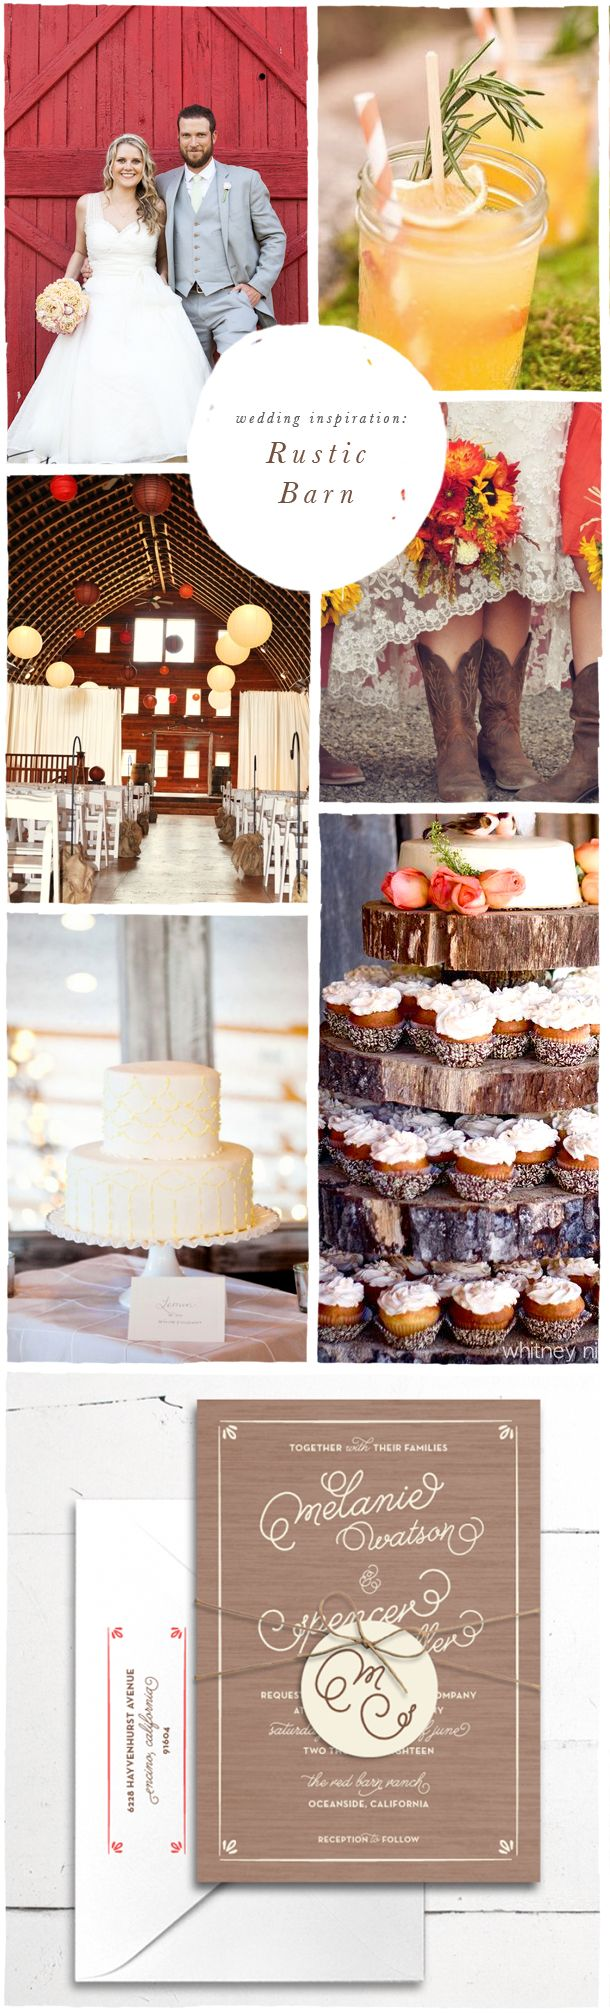 Wedding Inspiration: Rustic Barn featuring Union Barn wedding invitation | Rustic and fun with splashes of yellow red and brown | Smitten On Paper